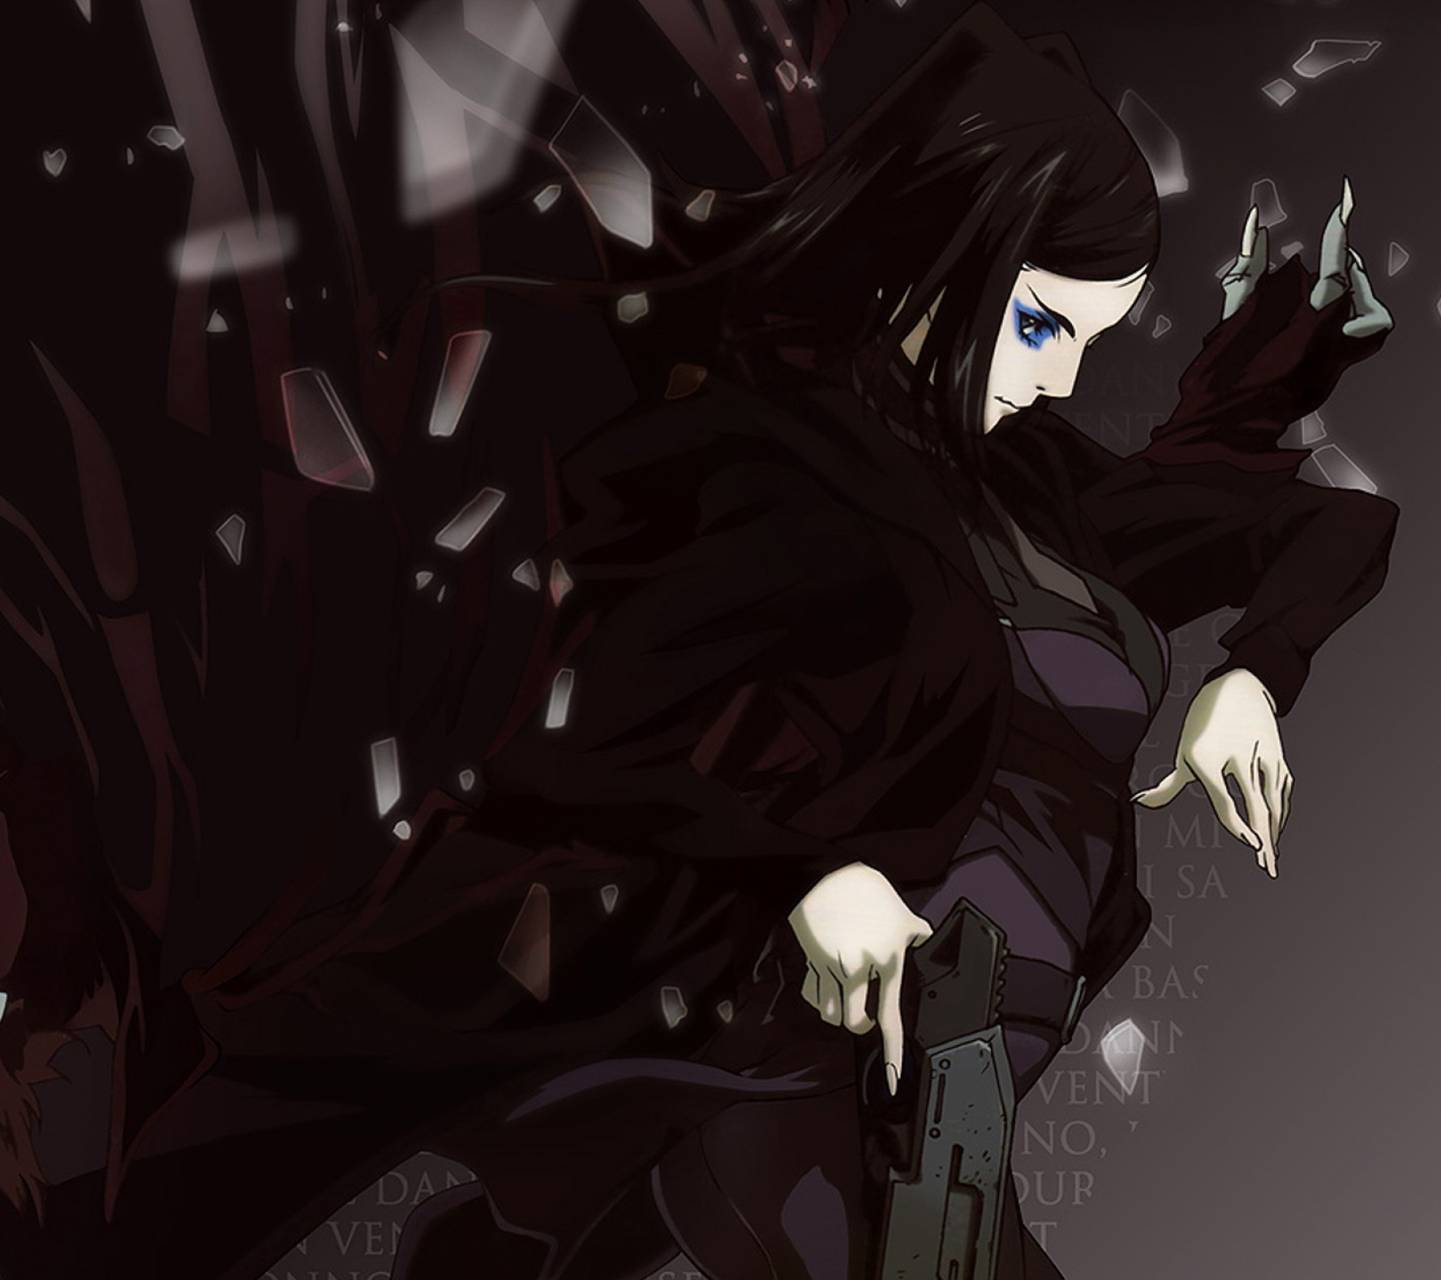 Ergo Proxy Wallpaper By Kirchkan